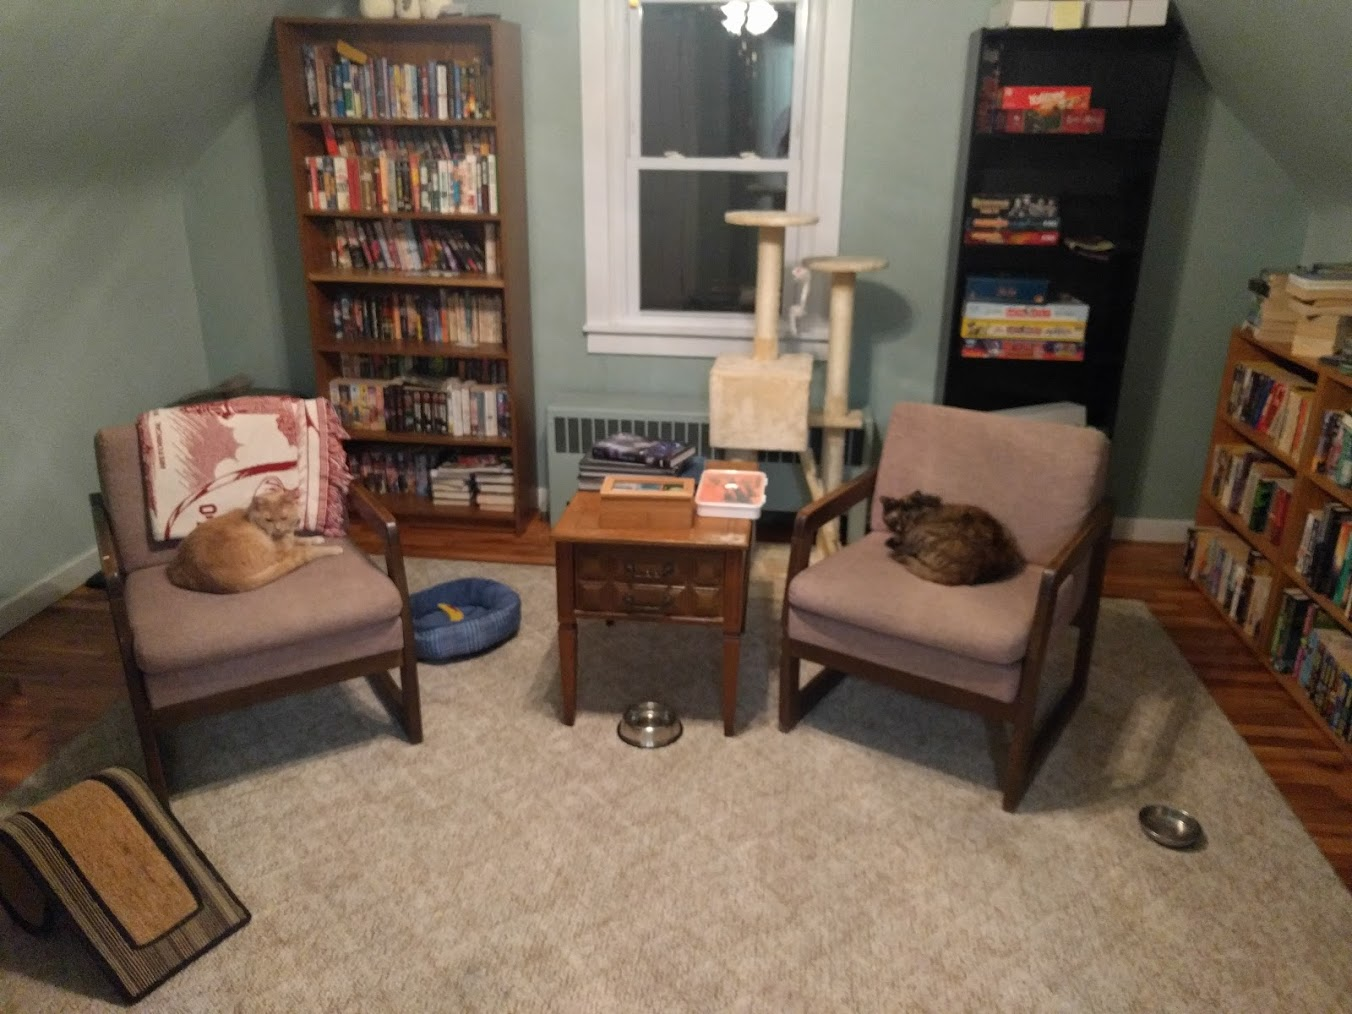 A ginger cat and a tortoiseshell cat curled up on comfortable looking library chairs. They are in the center of a room with a hardwood floor and a large number of bookshelves lining the walls.